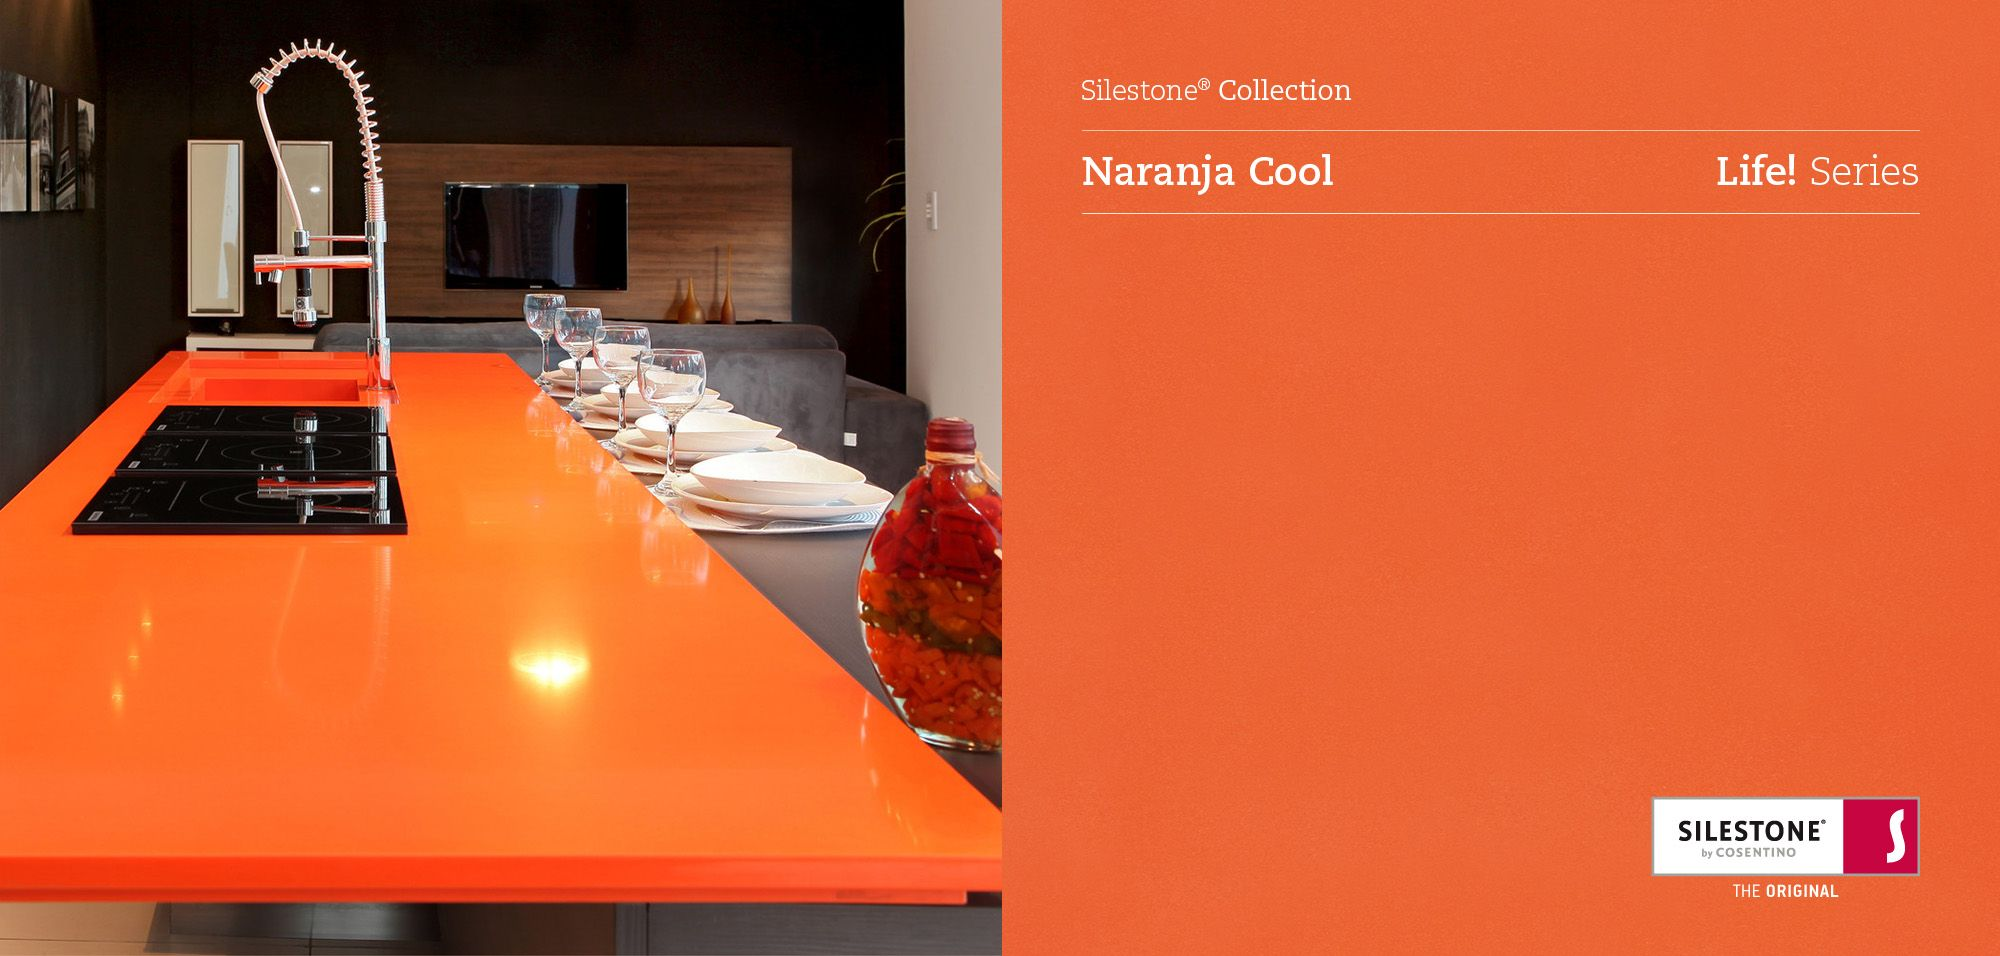 Silestone naranja cool silestone collection pinterest - Colores del silestone ...